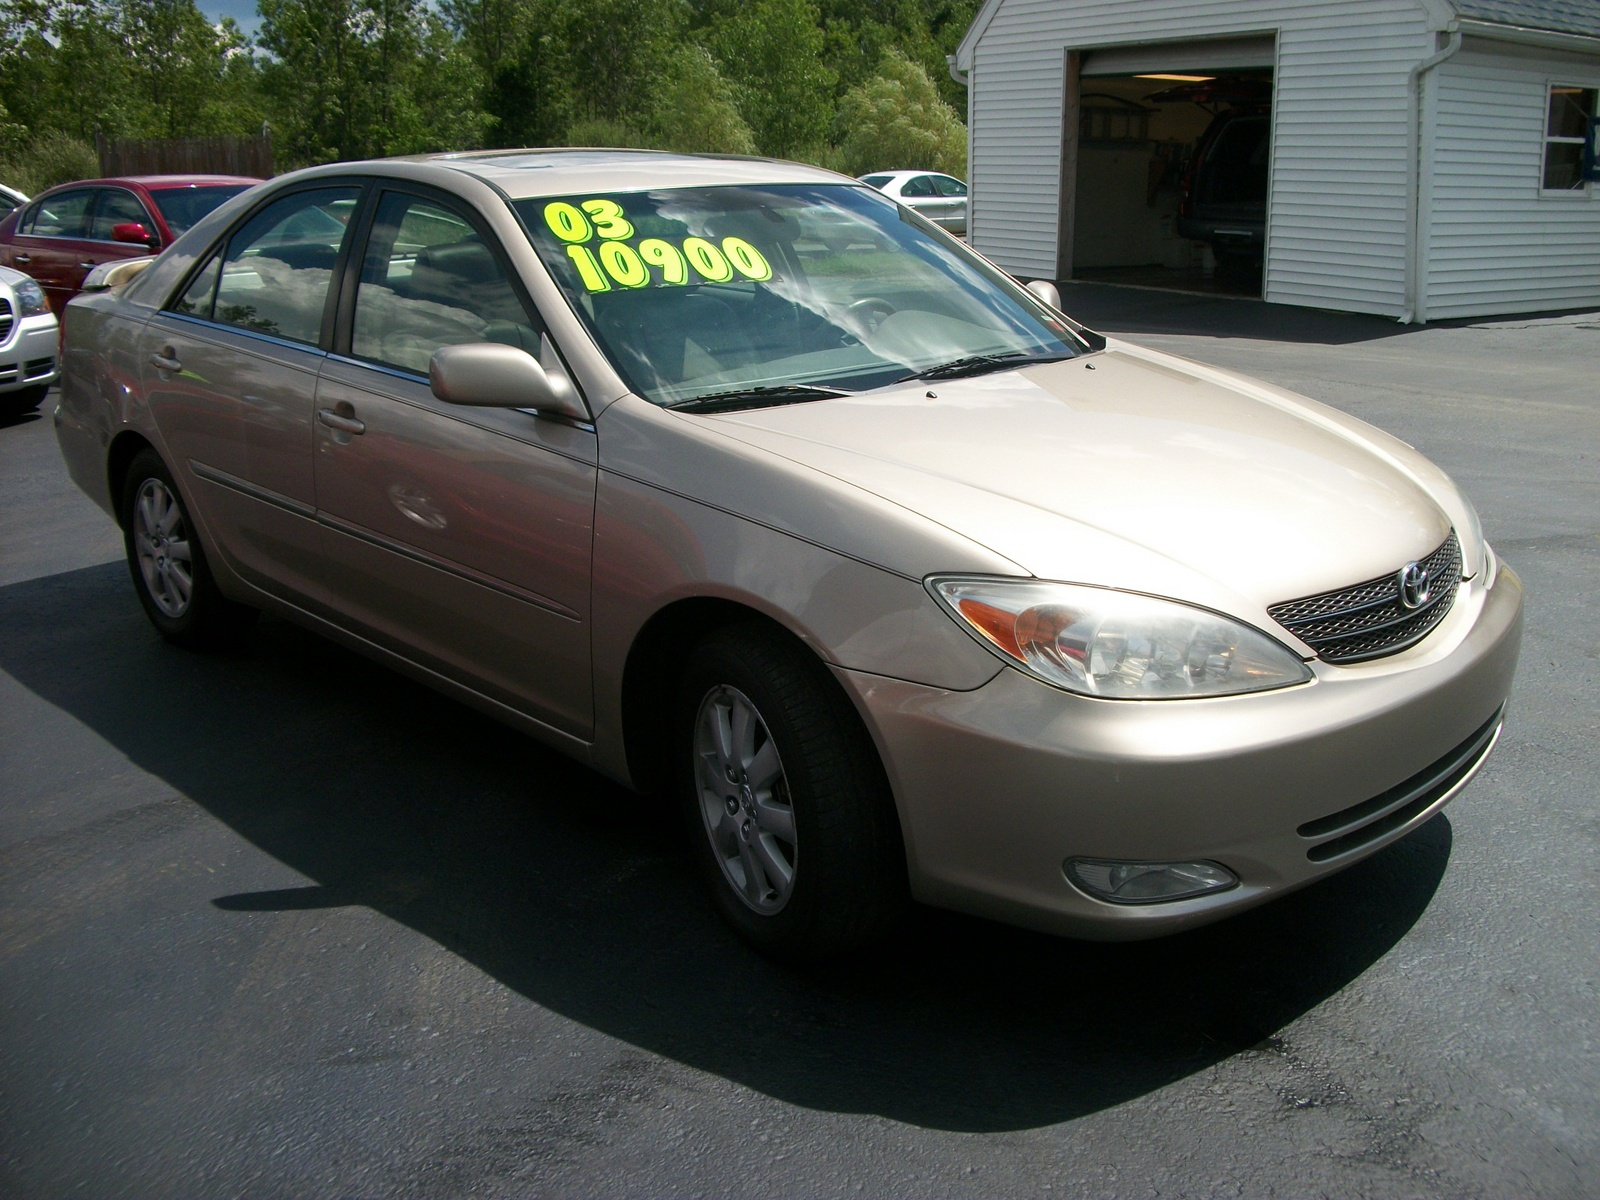 2003 toyota camry xle v6 reviews. Black Bedroom Furniture Sets. Home Design Ideas